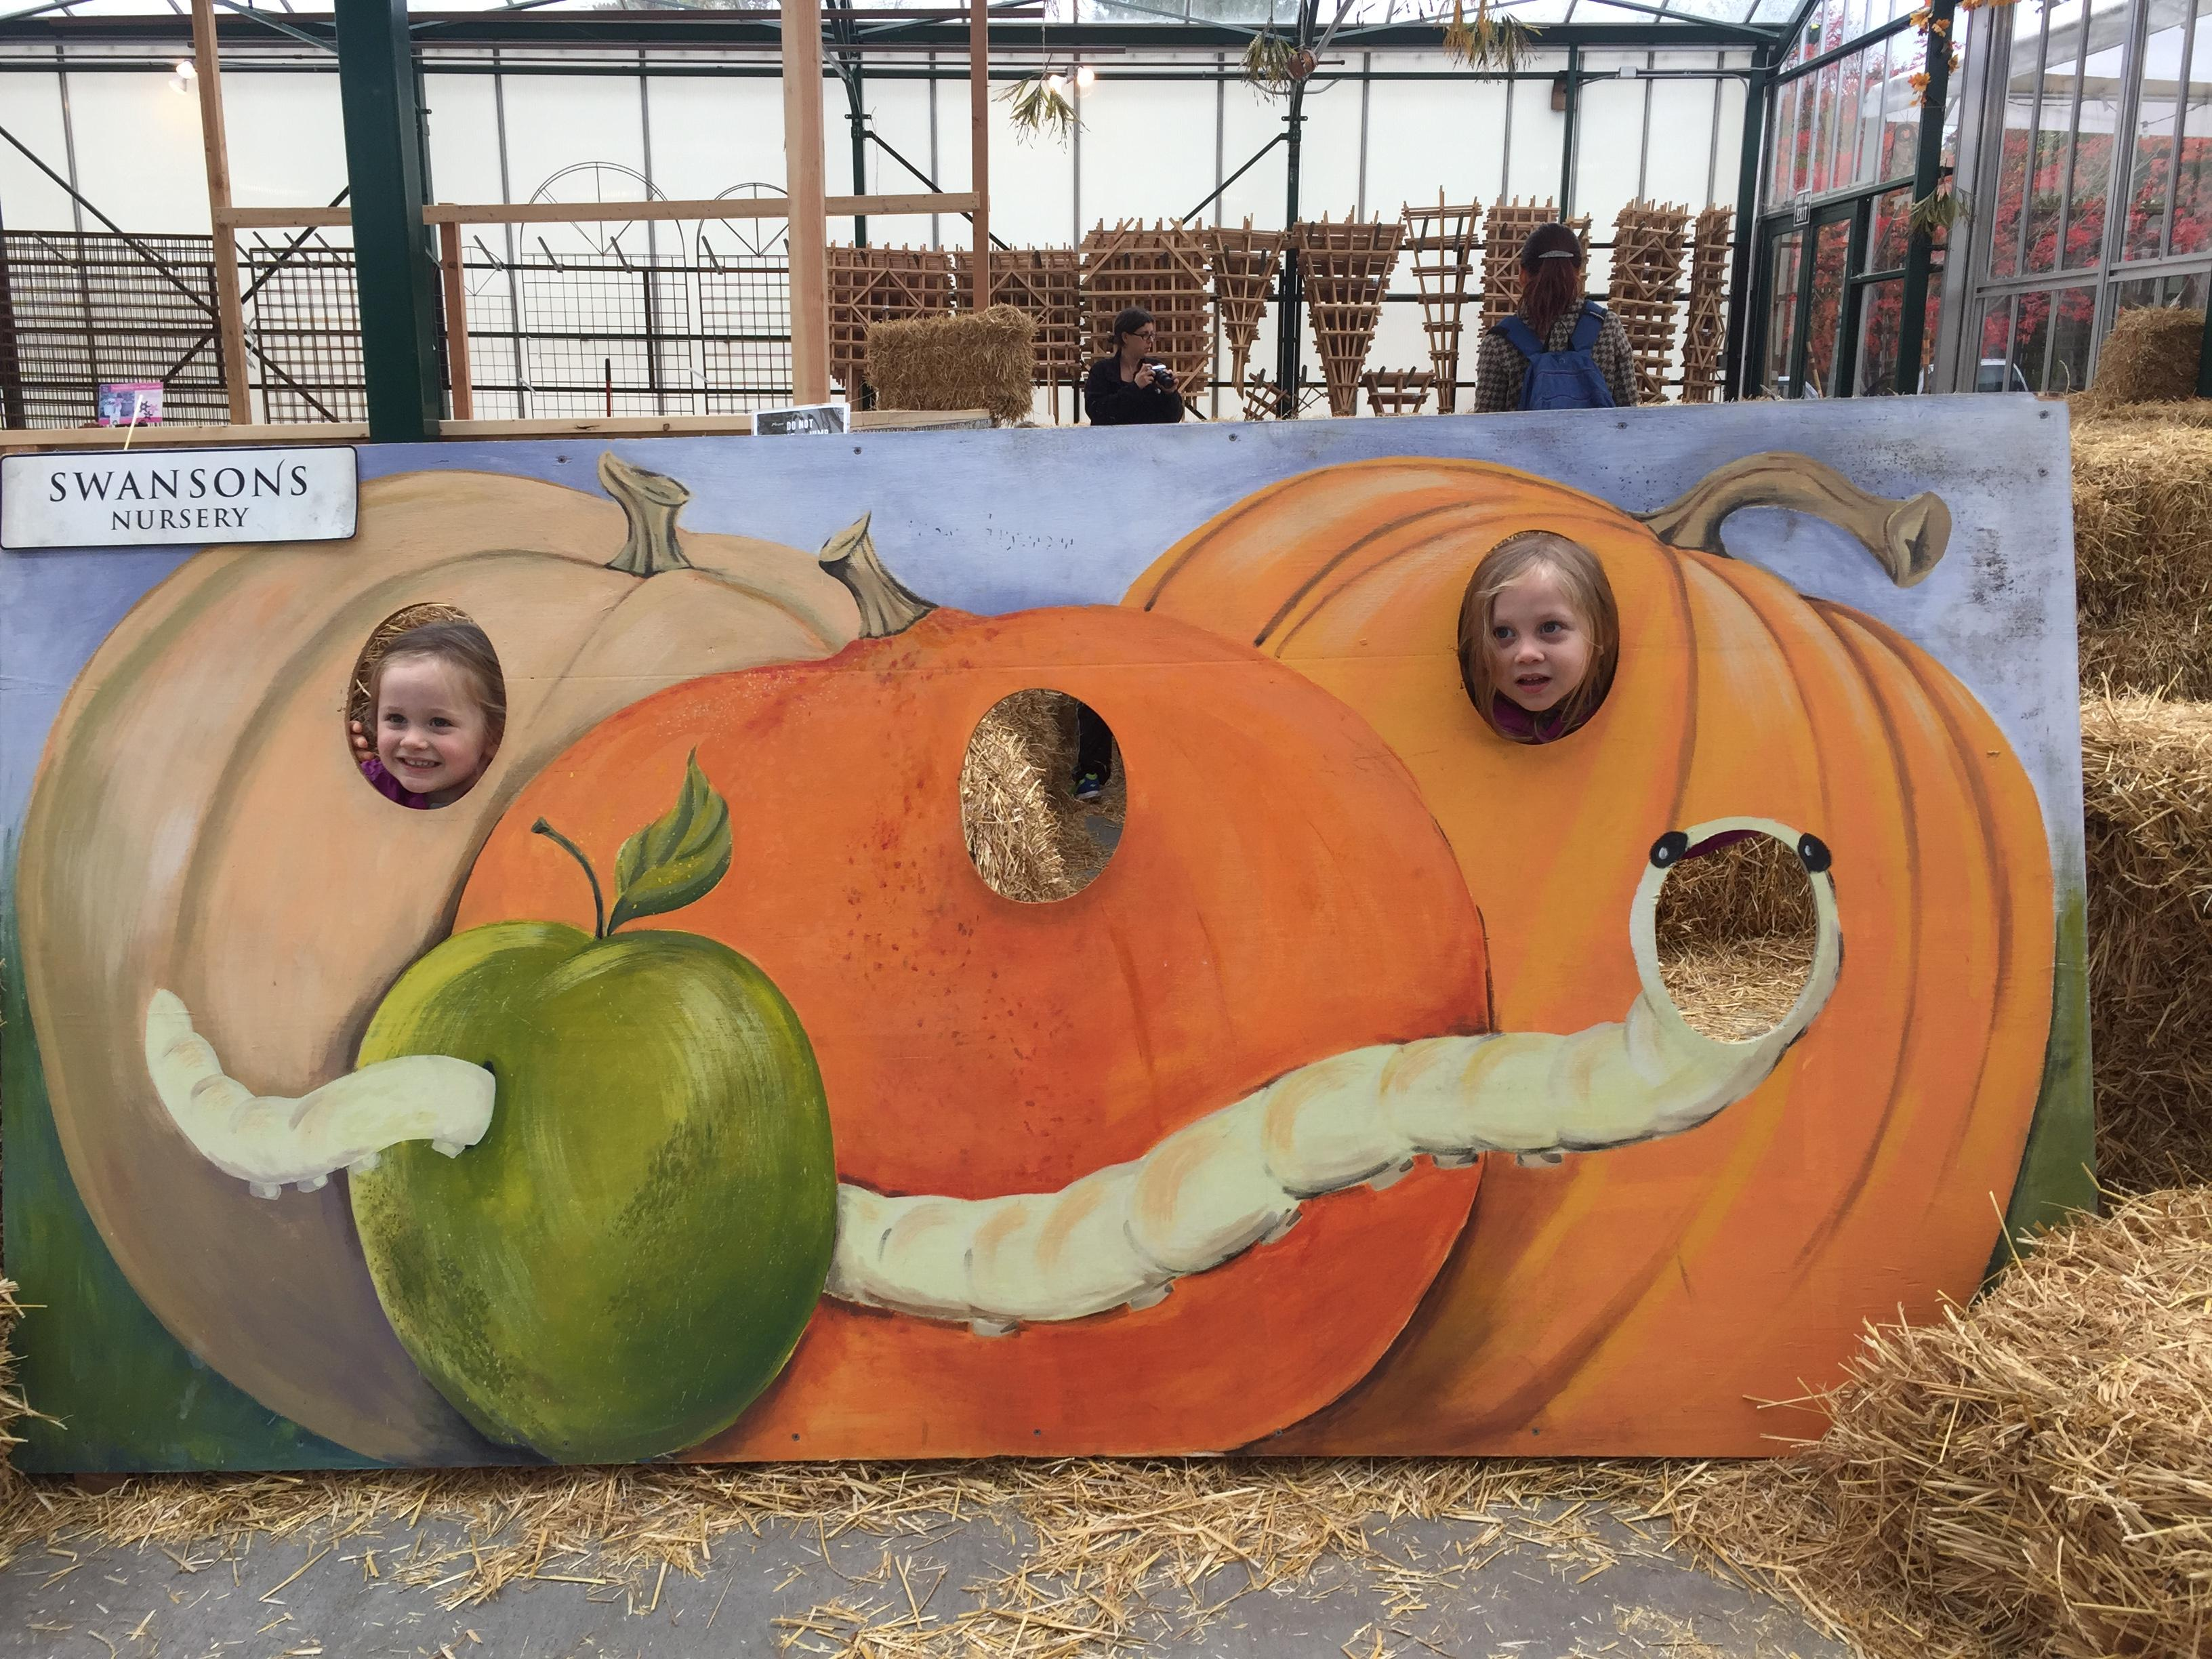 Head to Swanson's Nursery in Ballard for their annual Fall Festival, the weekend of October 14th and 15th from 10 a.m. to 3 p.m. There are hay rides, arts and crafts, a hay maze and family friendly games. (Image: Rebecca Mongrain/Seattle Refined)